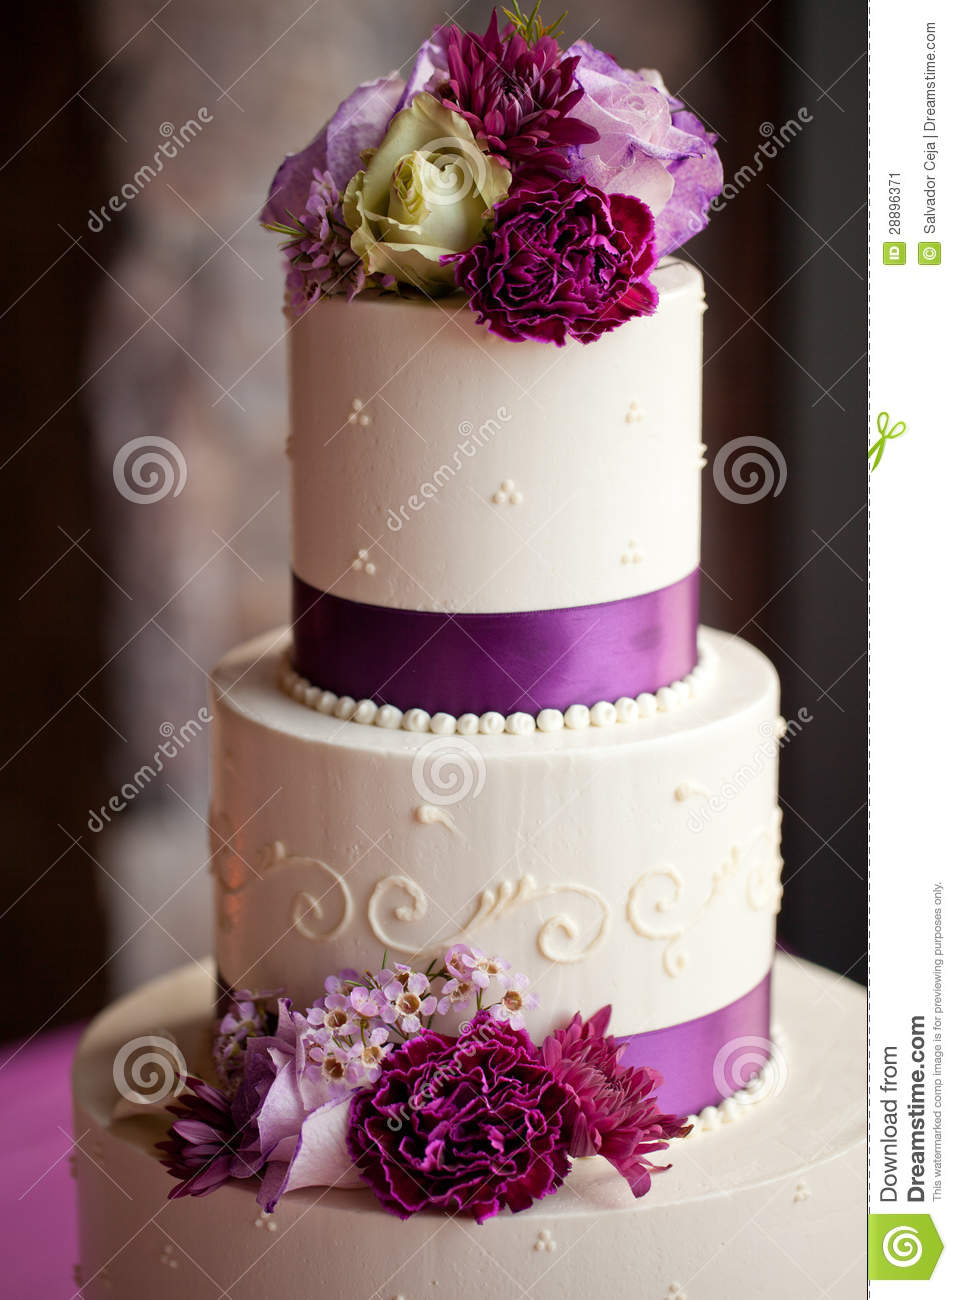 wedding cake with flowers on the side wedding cake with flowers stock image image 28896371 26884